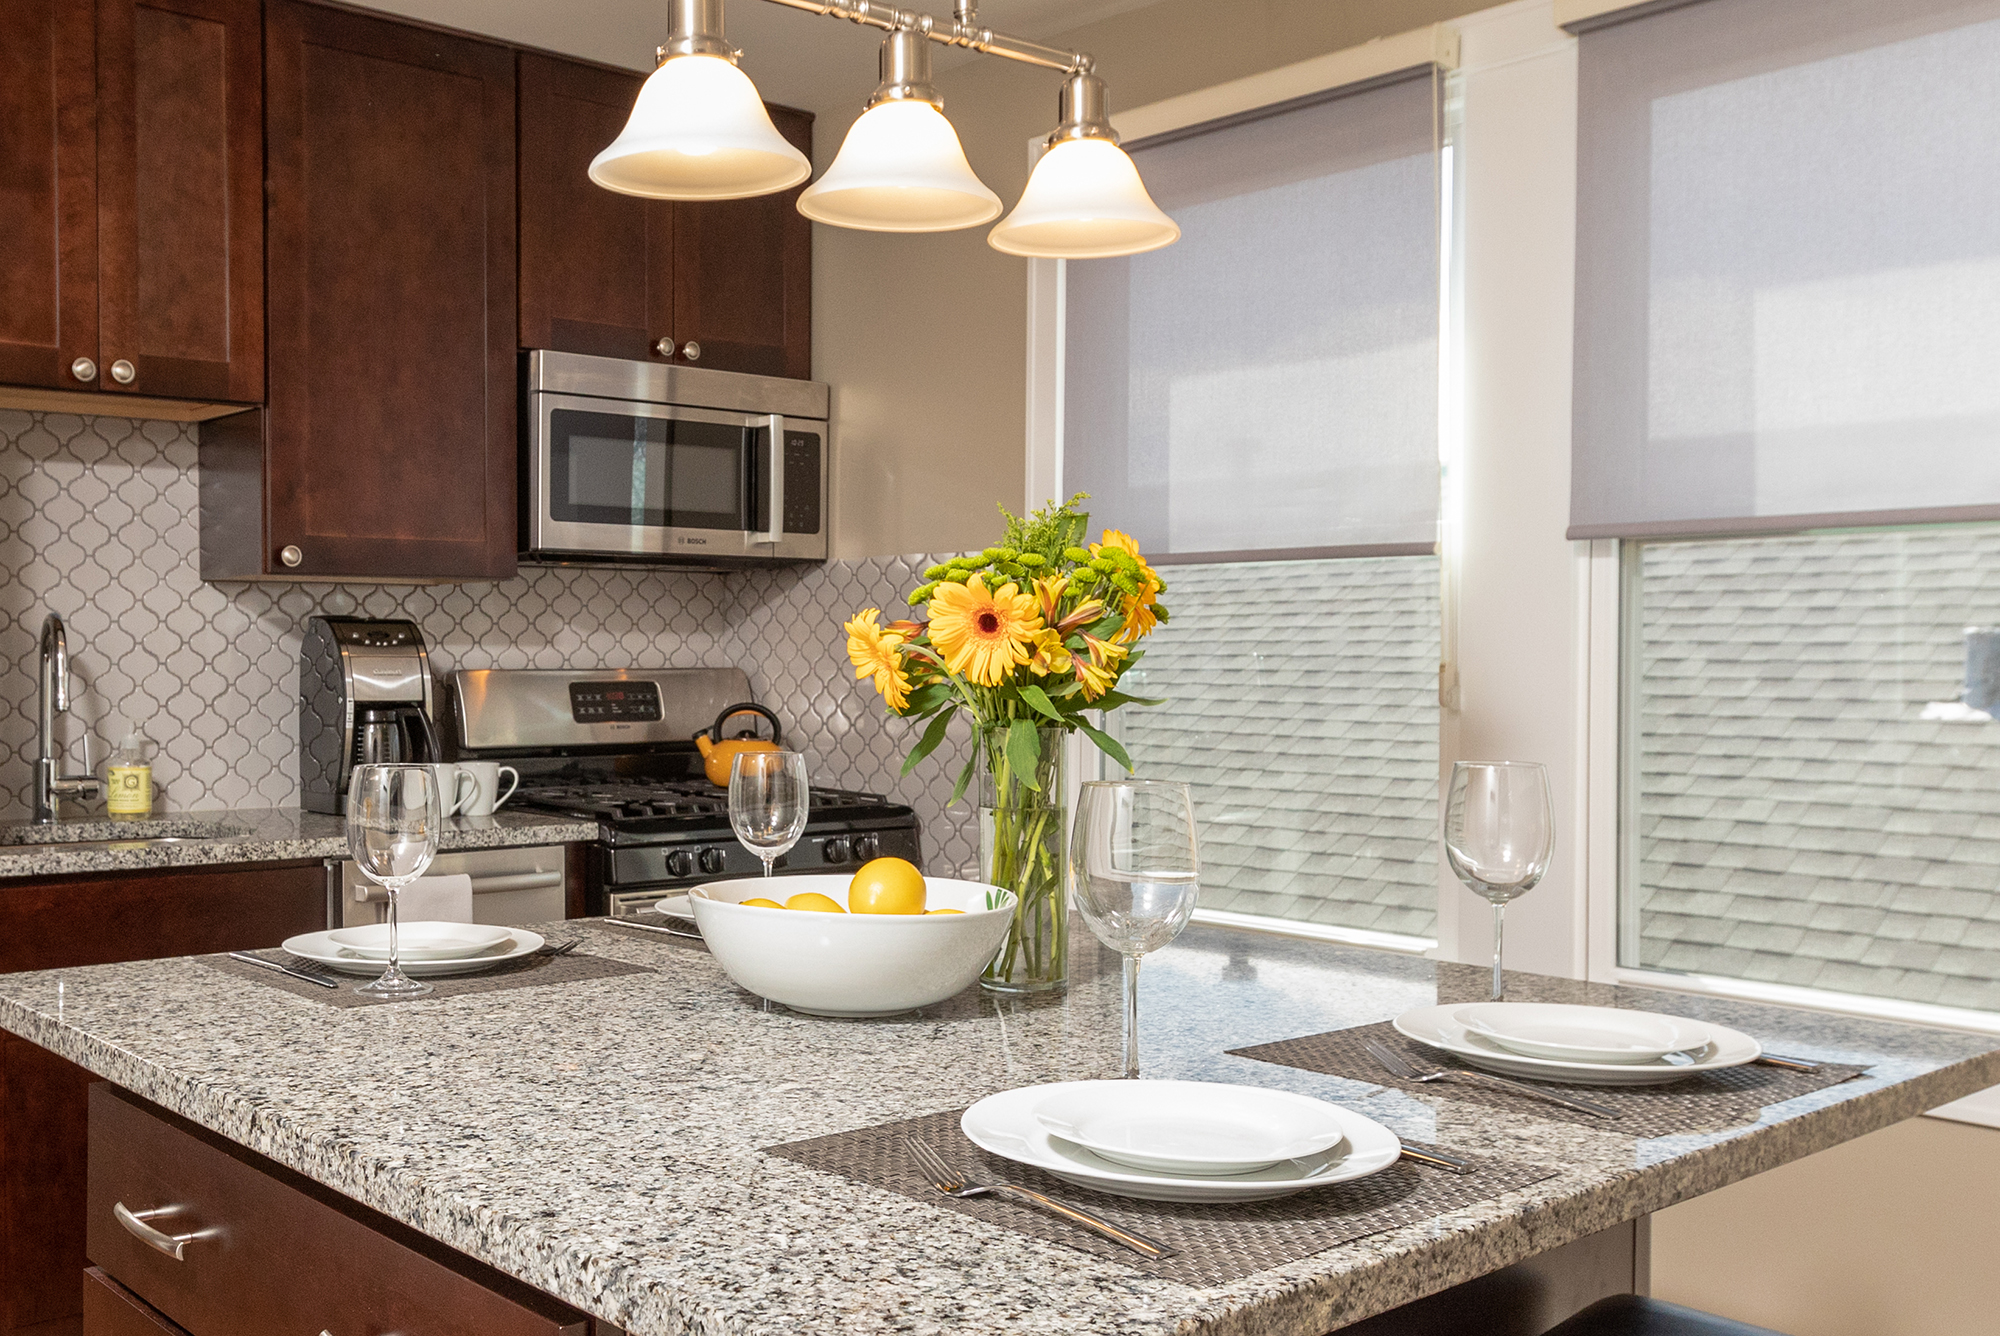 Chicago vacation rental with View of Eat-in kitchen